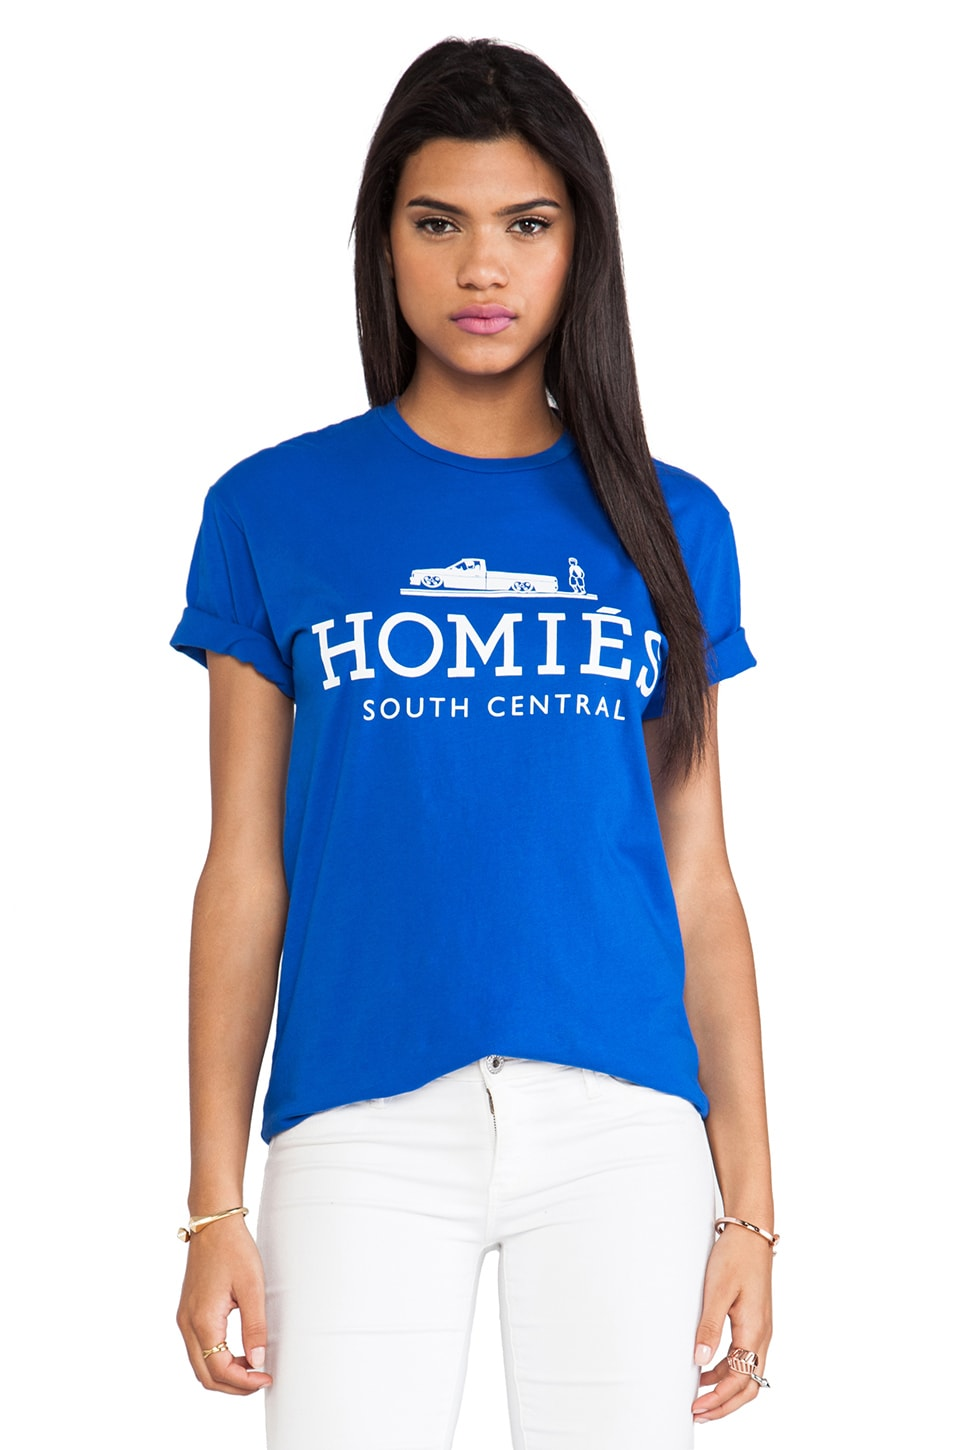 Brian Lichtenberg Homies Tee in Royal Blue & White